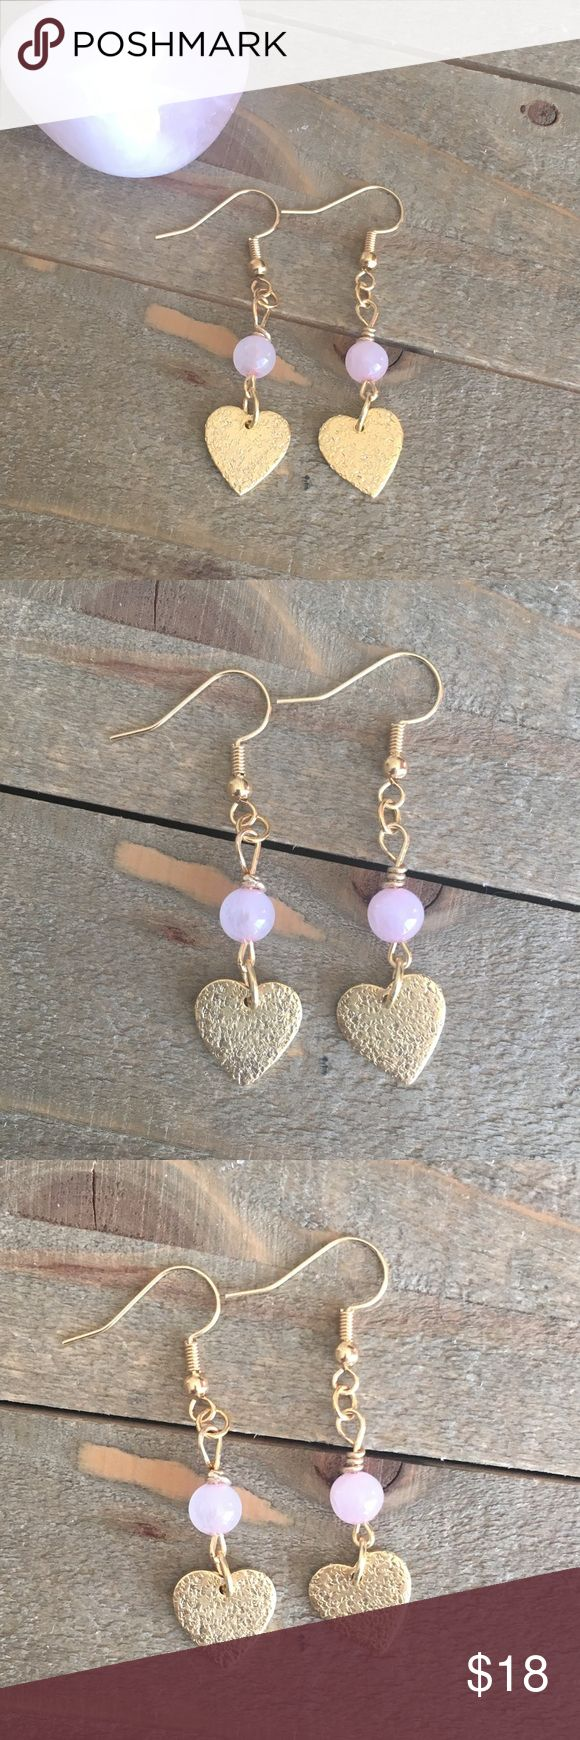 Rose Quartz Heart Earrings I designed and made these natural Rose Quartz heart earrings to bring love, kindness and friendship to the wearer. They feature 10K gold plate hearts and nickel free ear wires. This wonderful stone has several healing properties that are listed in the photos above.  Please Note: The use of gemstones is not meant as a substitute for medical or psychological diagnosis and treatment  Always made with love, light and positive energy! Handmade Jewelry Earrings